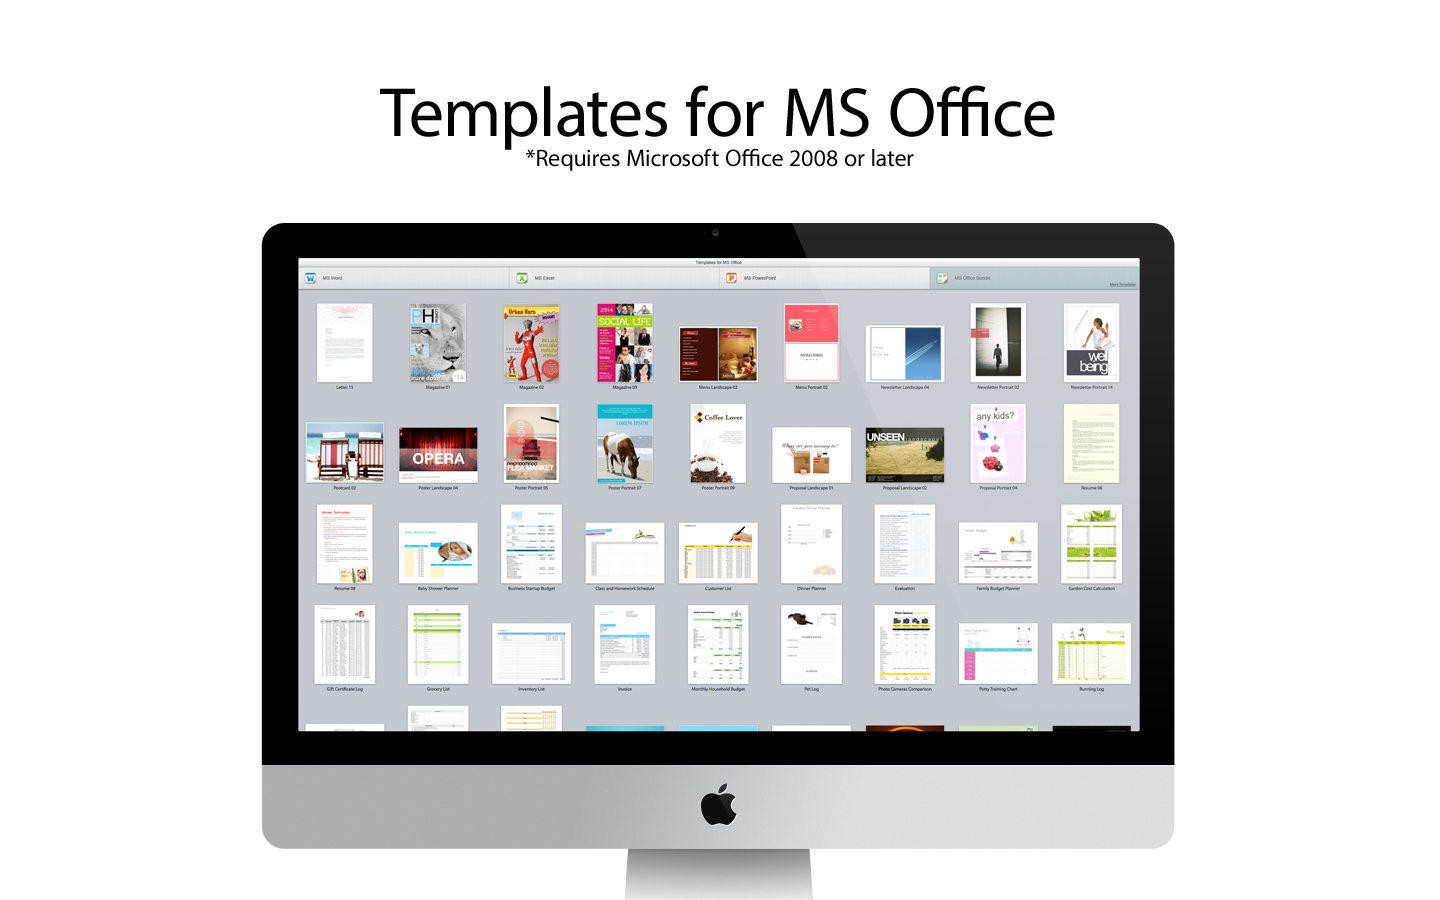 Amazon.com: Templates for MS Office [Download]: Software